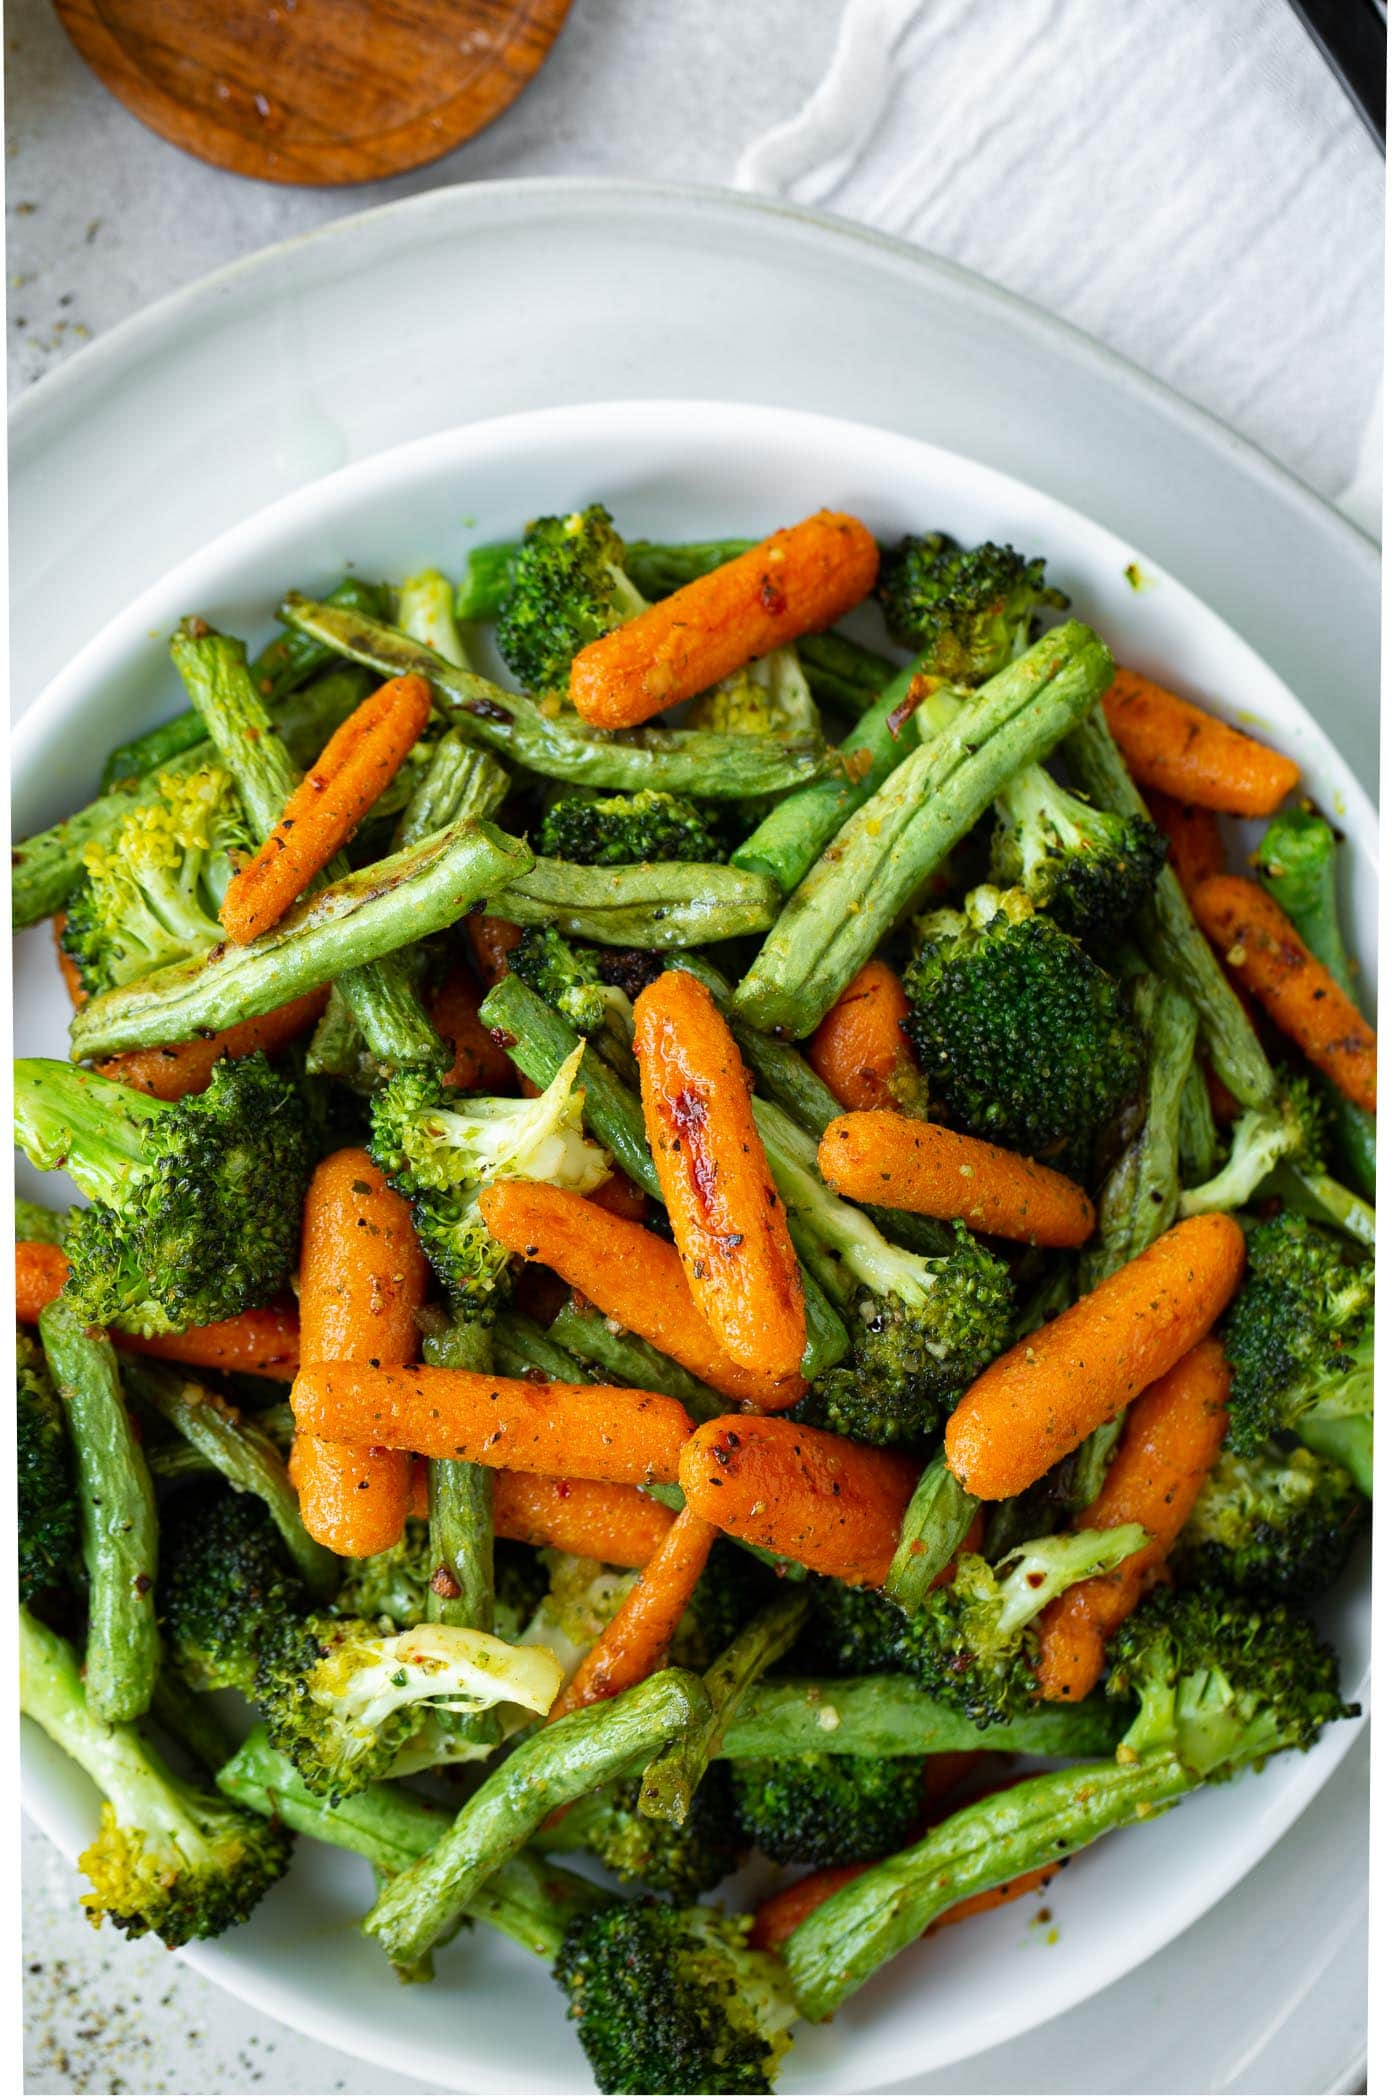 a photo of a roasted vegetable medley in a white serving bowl.